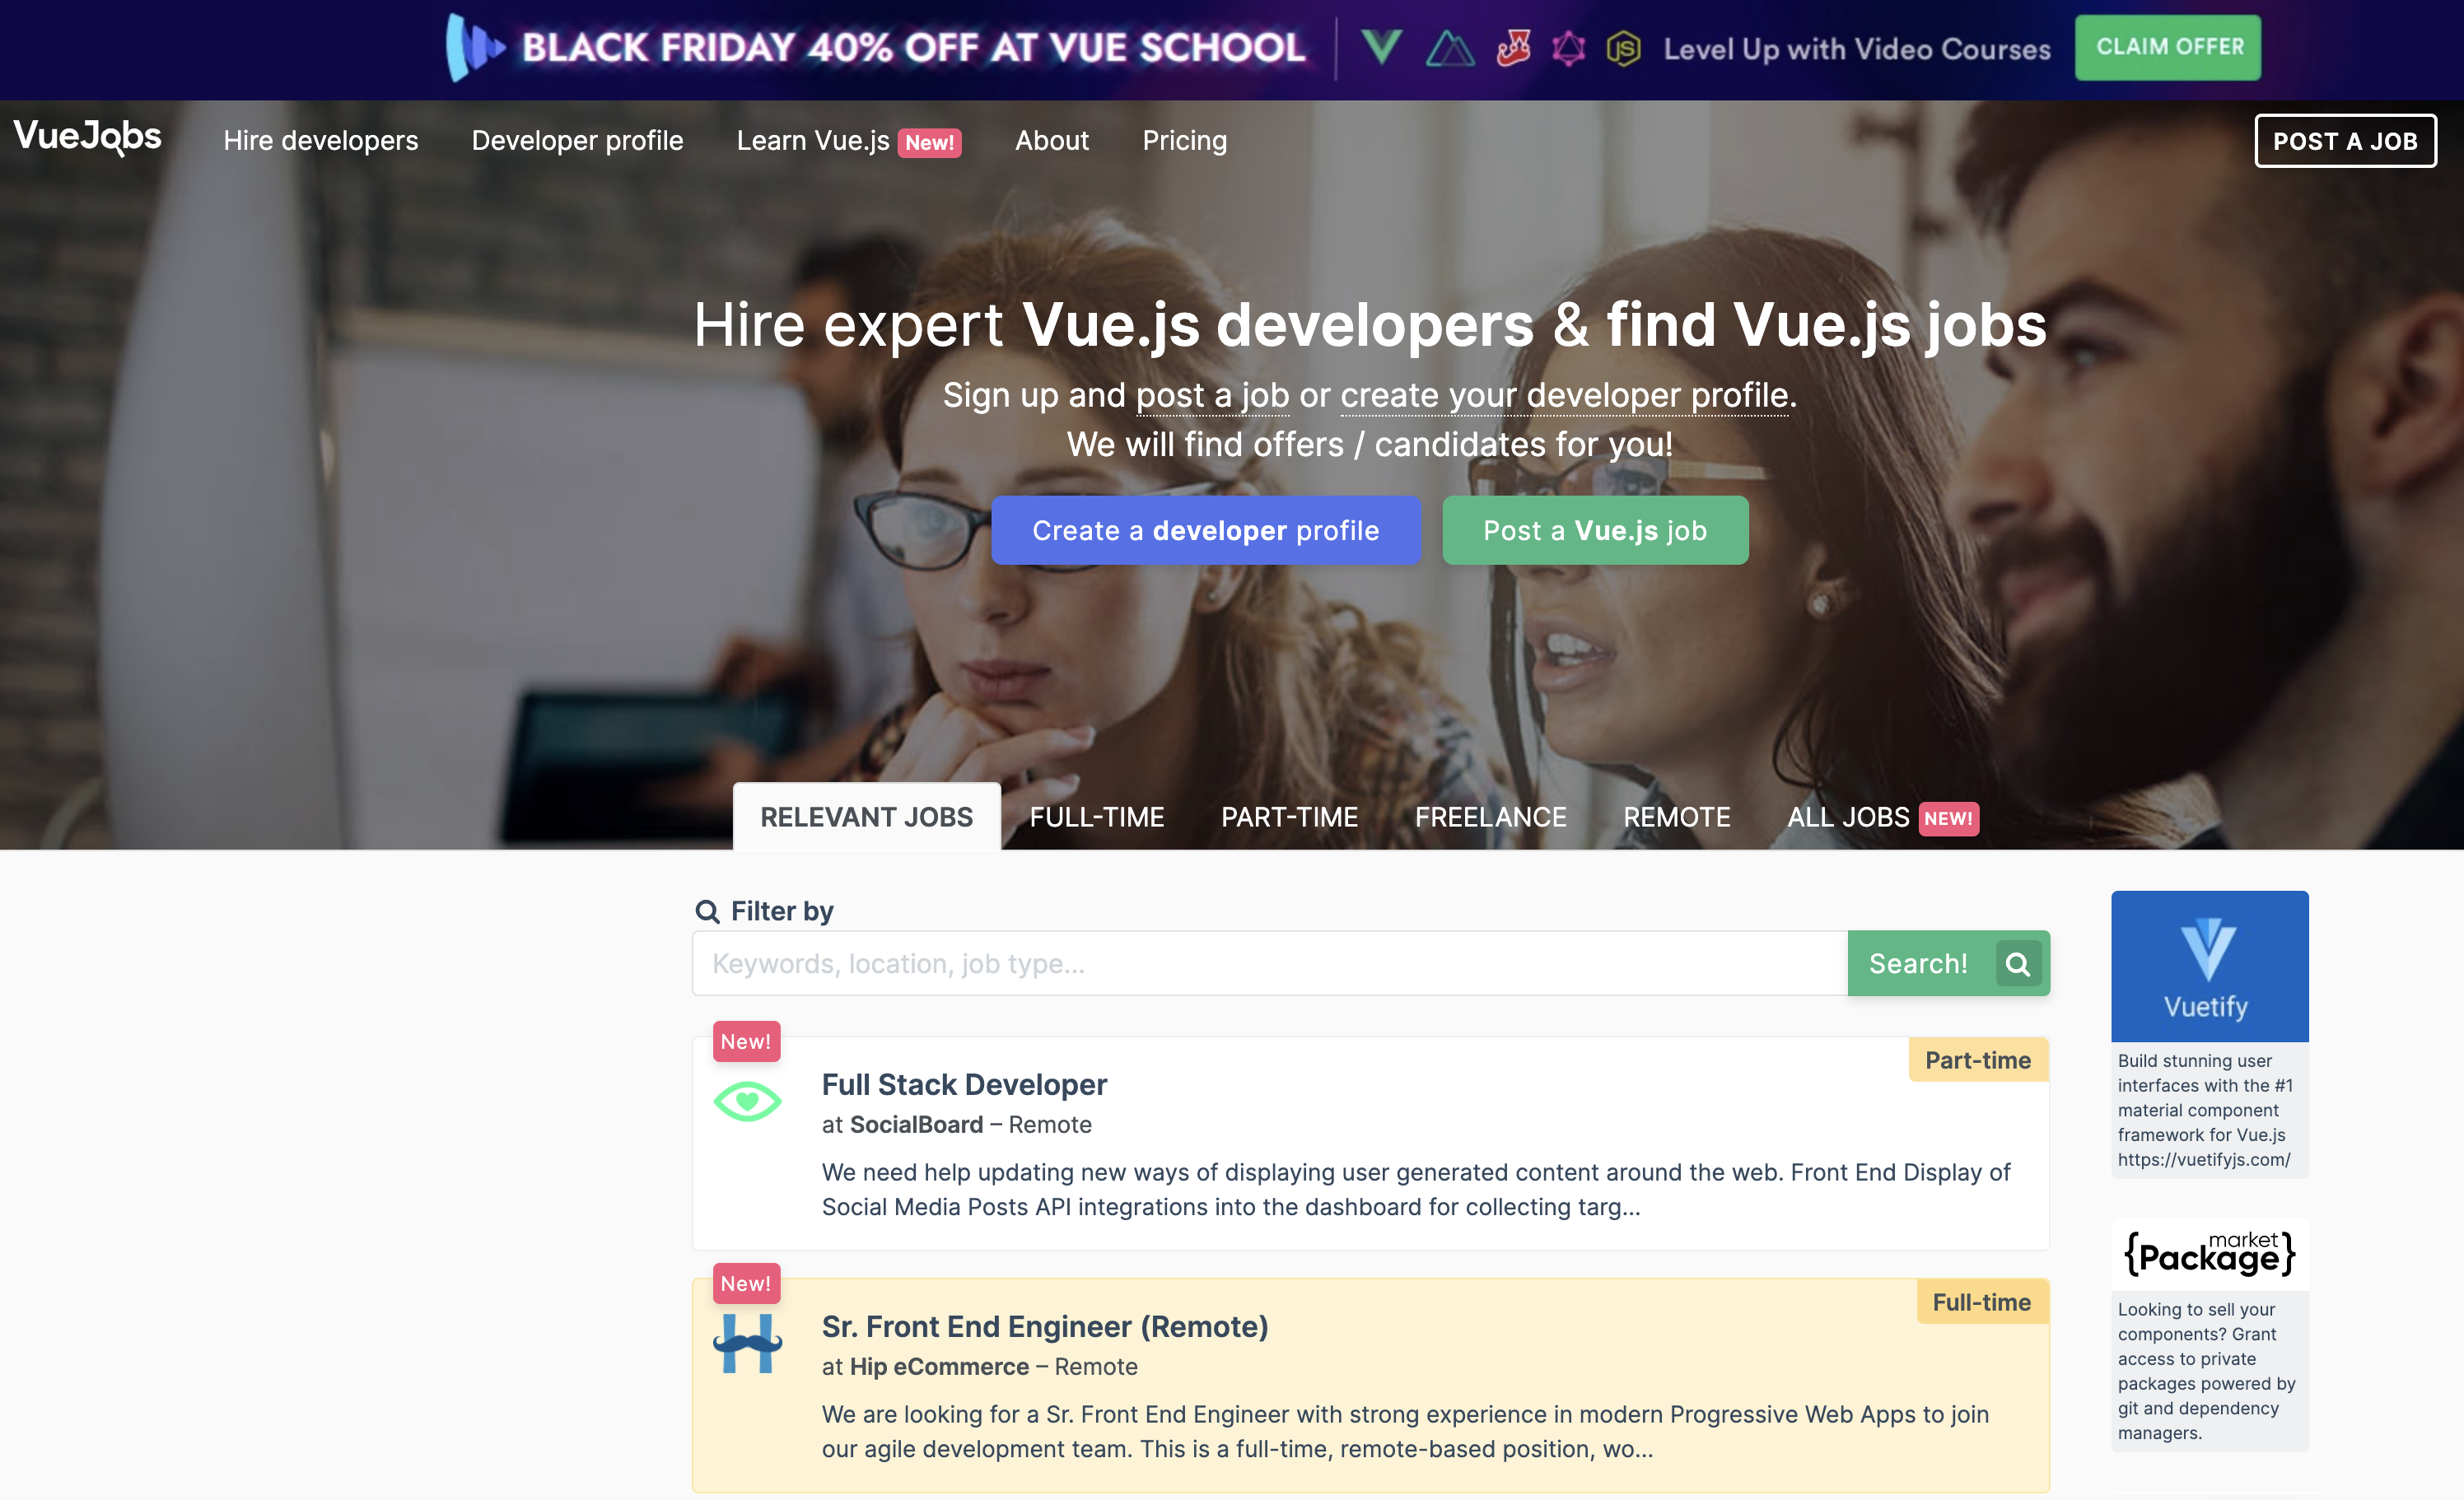 VueJobs homepage